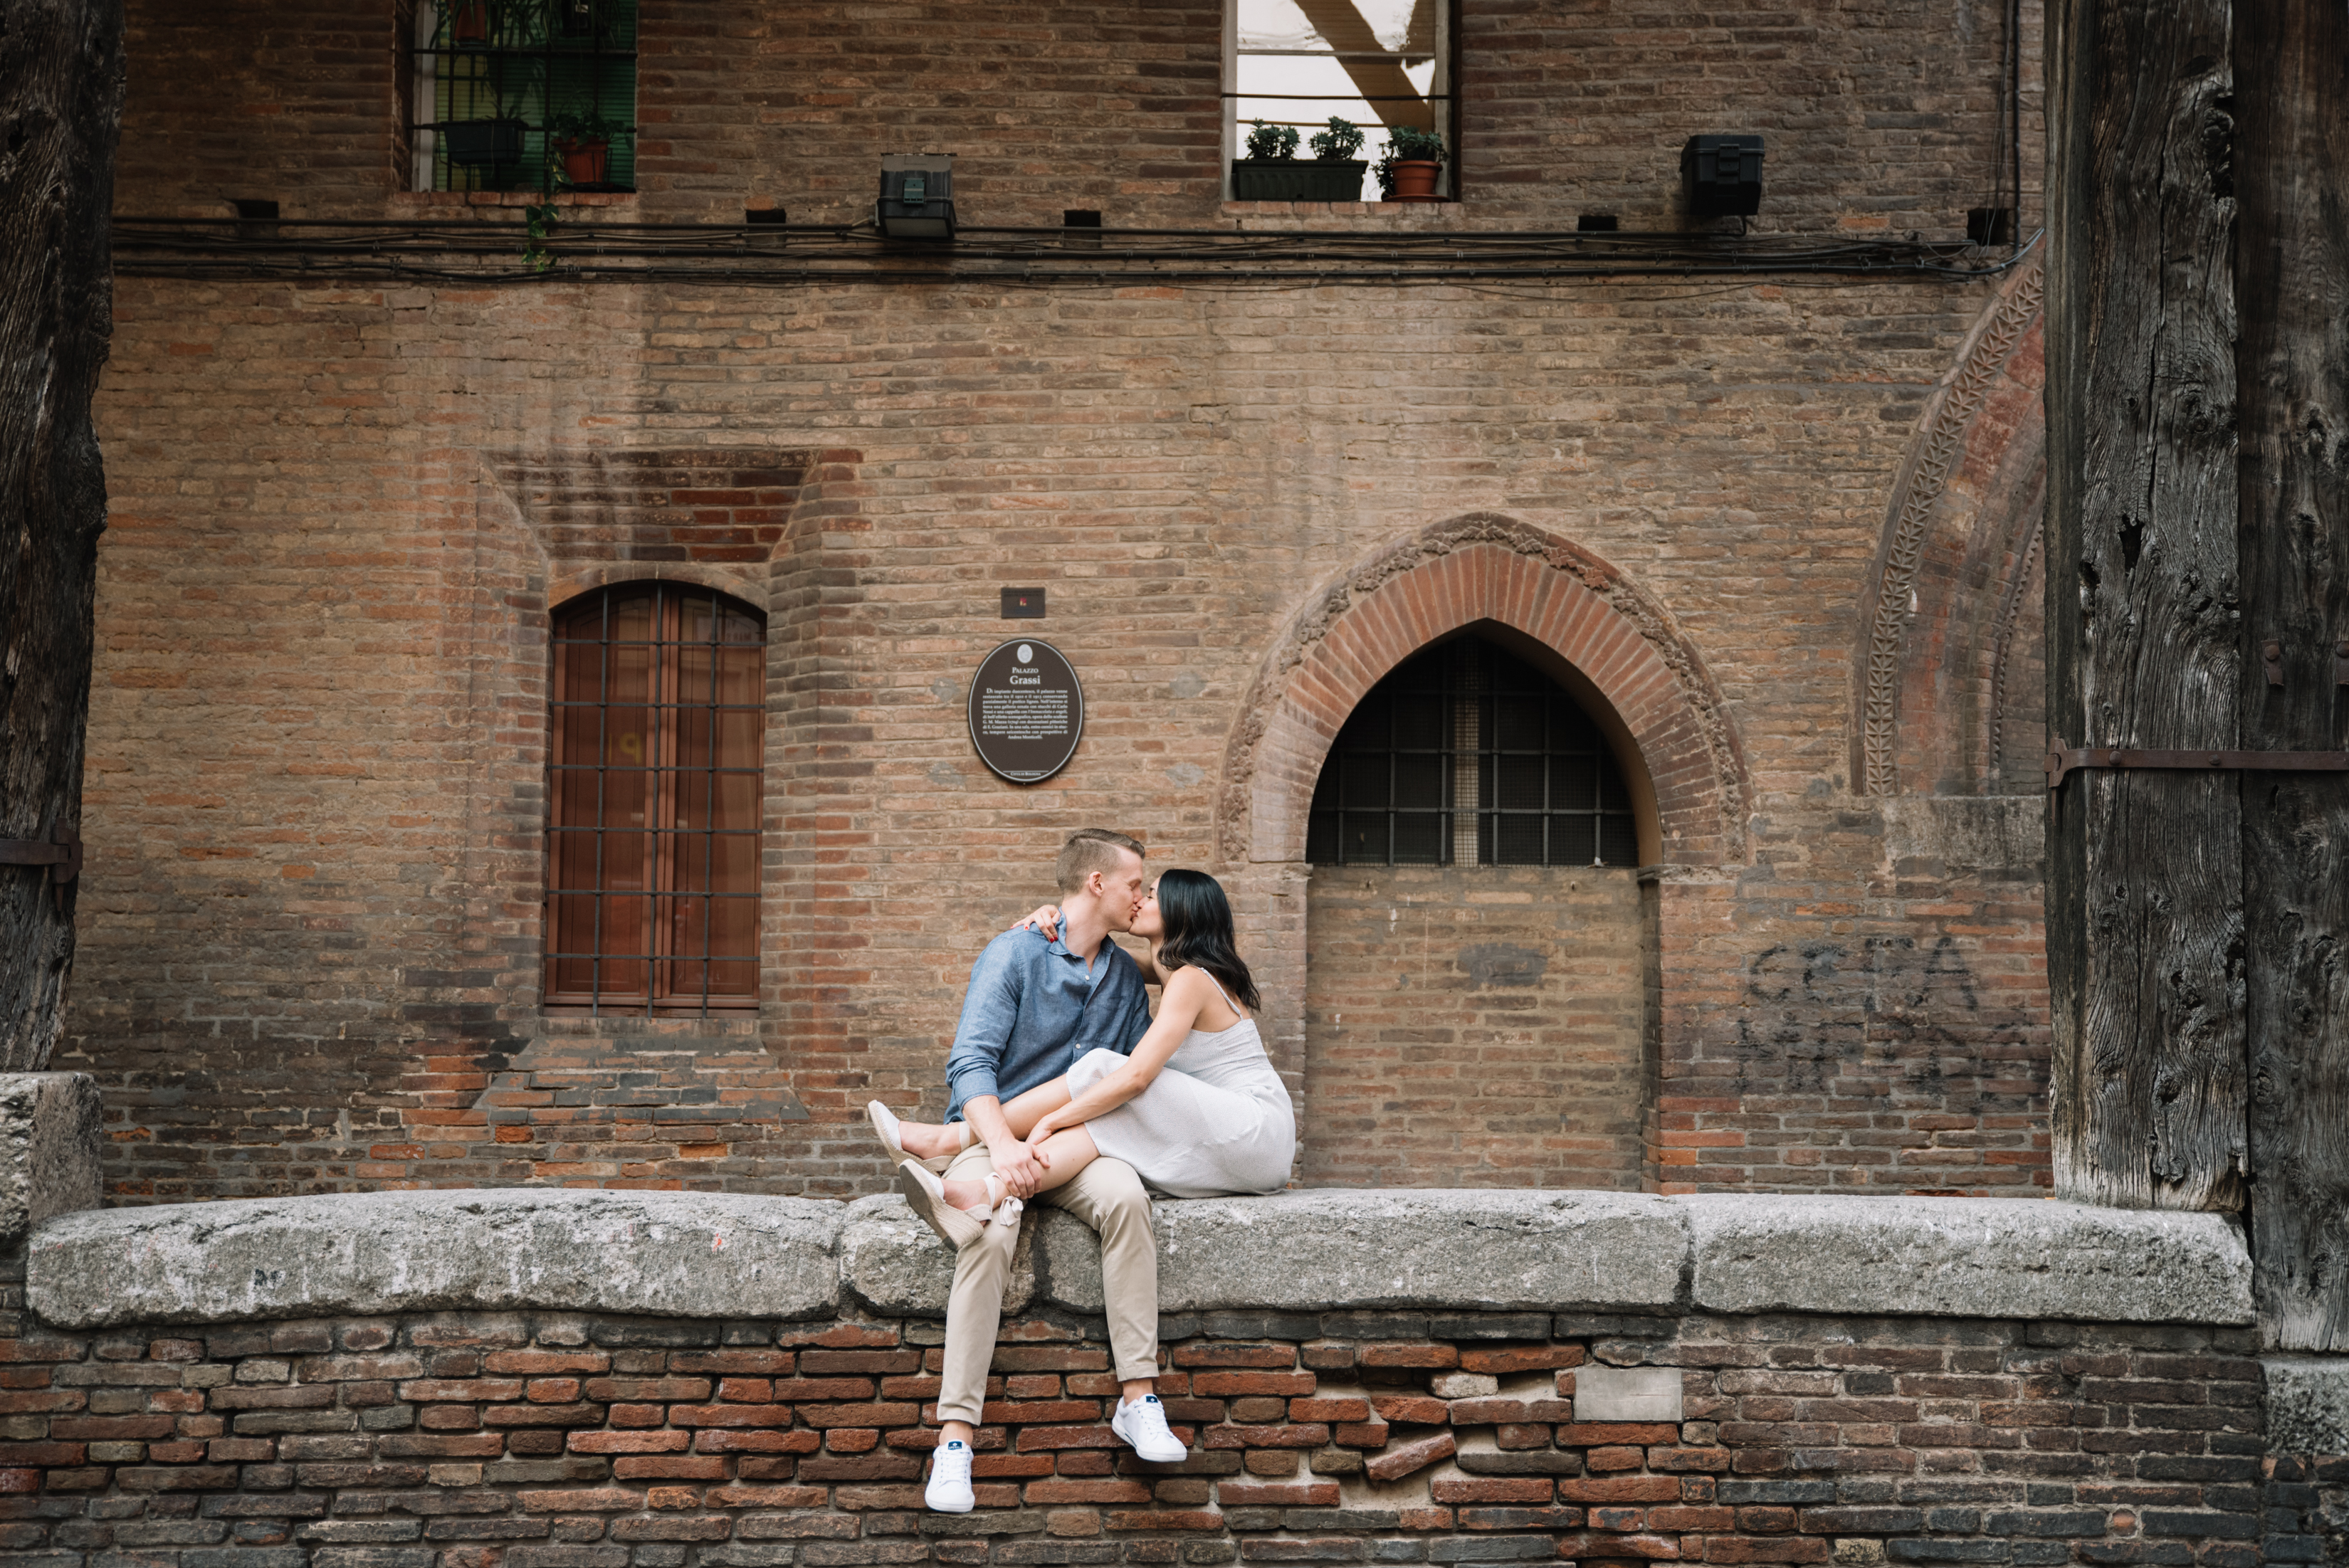 couple sitting on a ledge, kissing, in Bologna, Italy